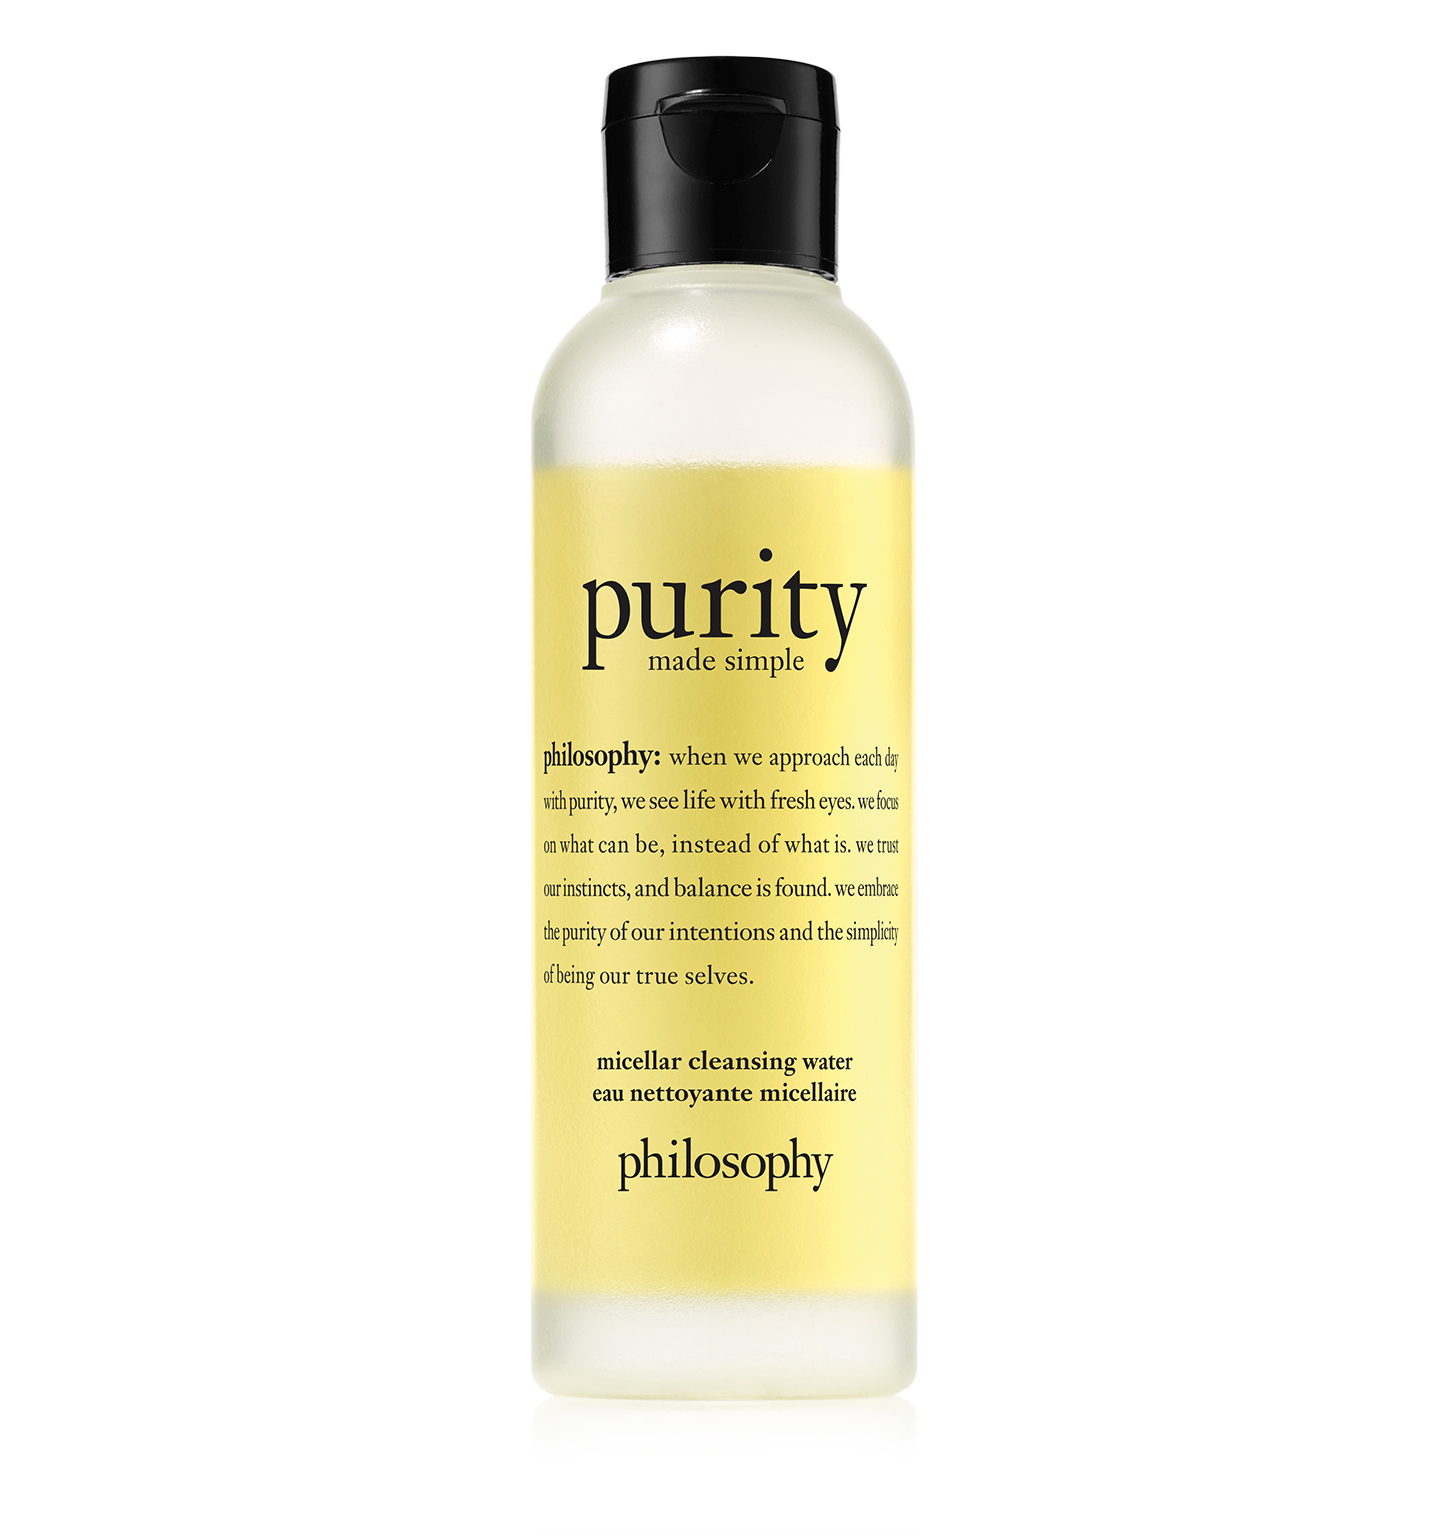 philosophy, purity made simple micellar water 3.4 oz.